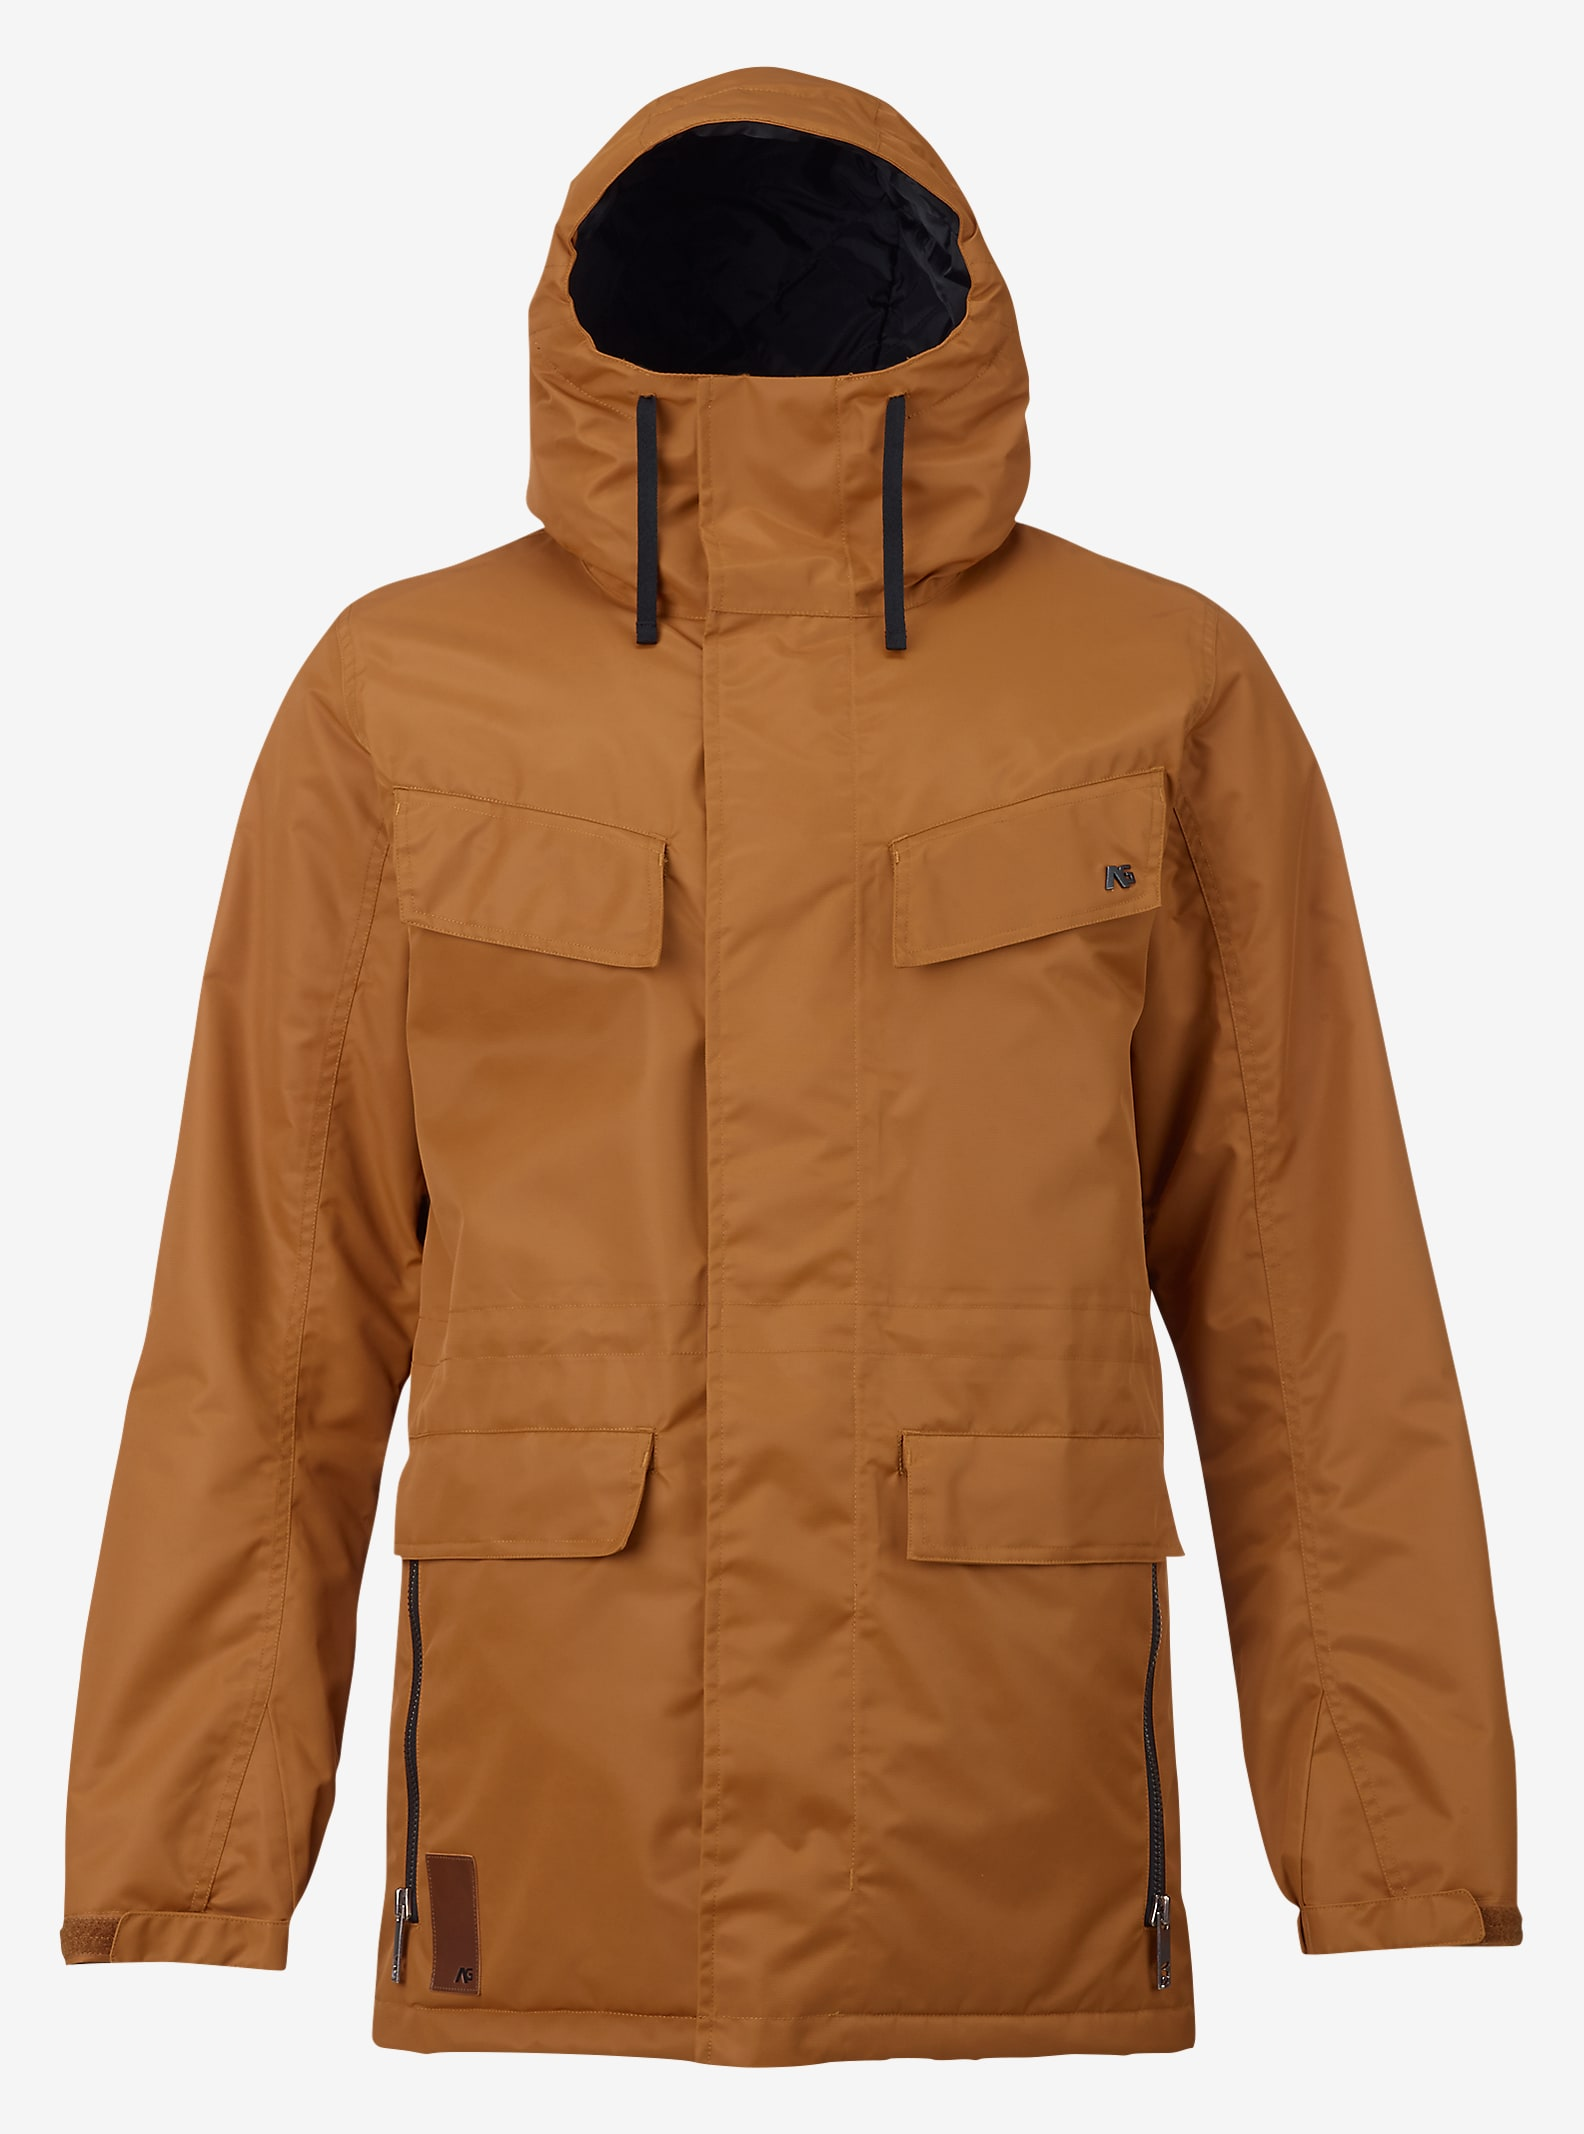 Analog - Veste Merchant affichage en Copper